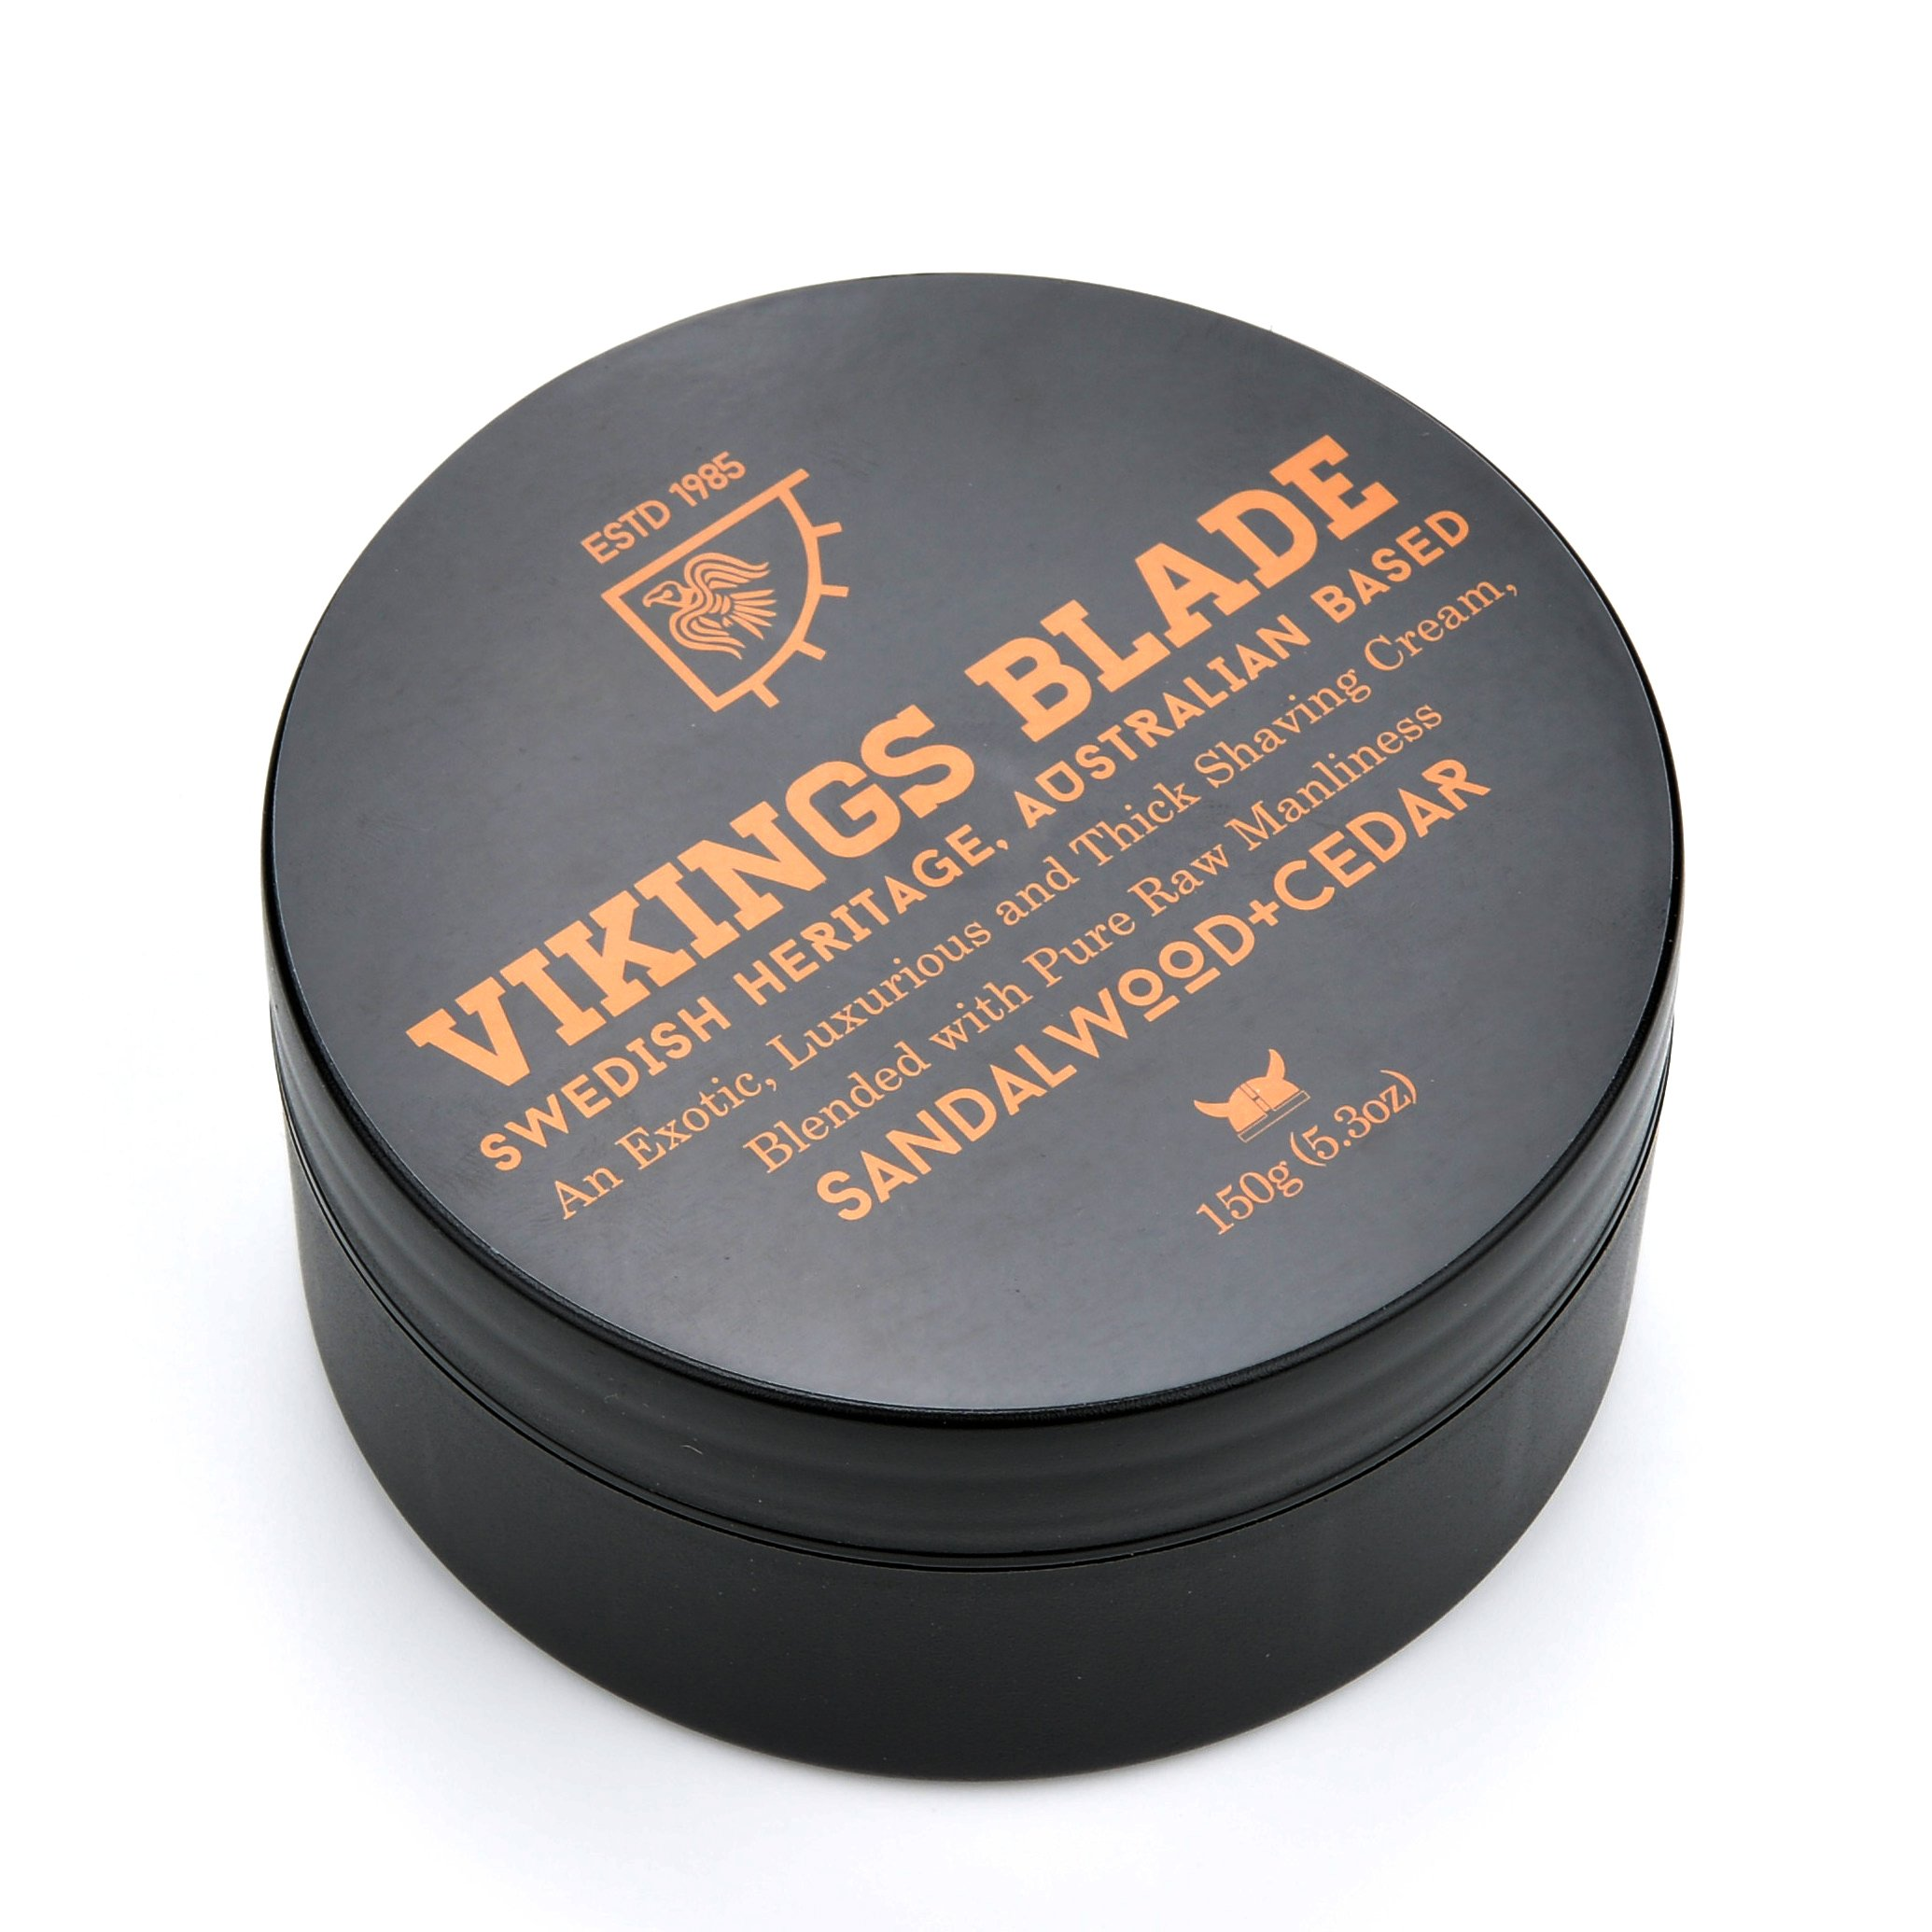 VIKINGS BLADE Luxury Foaming Shaving Cream, Sandalwood & Western Red Cedar, NON-LATHER